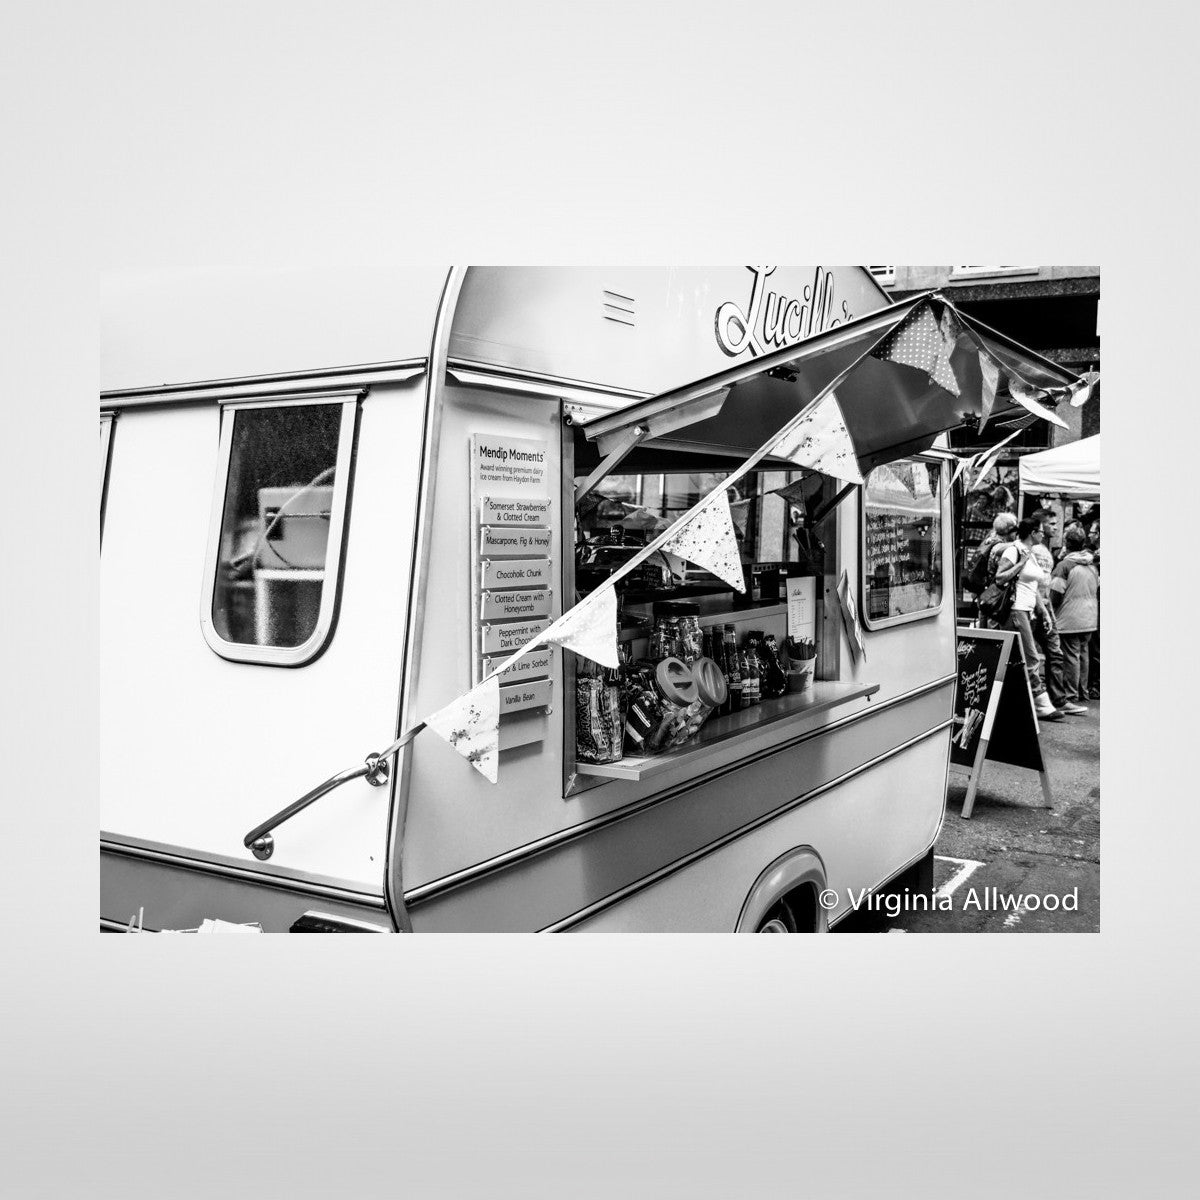 Market Treats - B&W Photographic Print by Virginia Allwood at The Bristol Shop